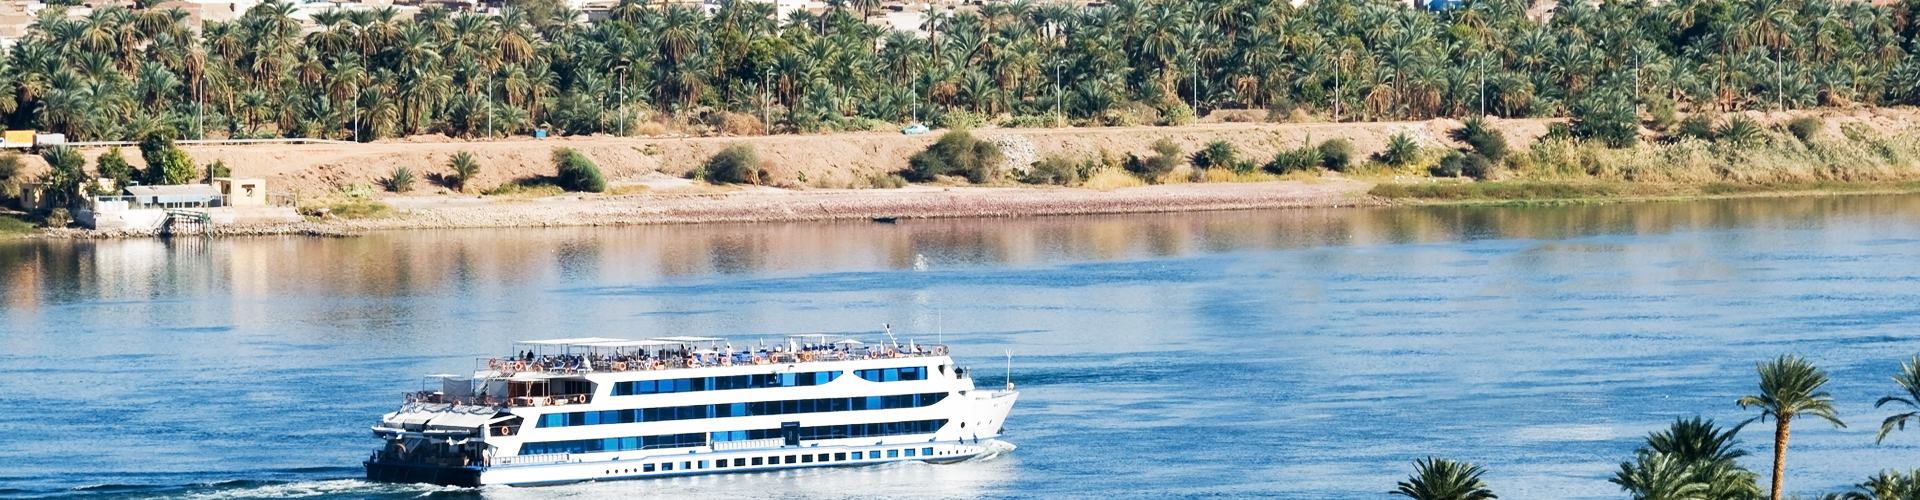 Beguiling Nile